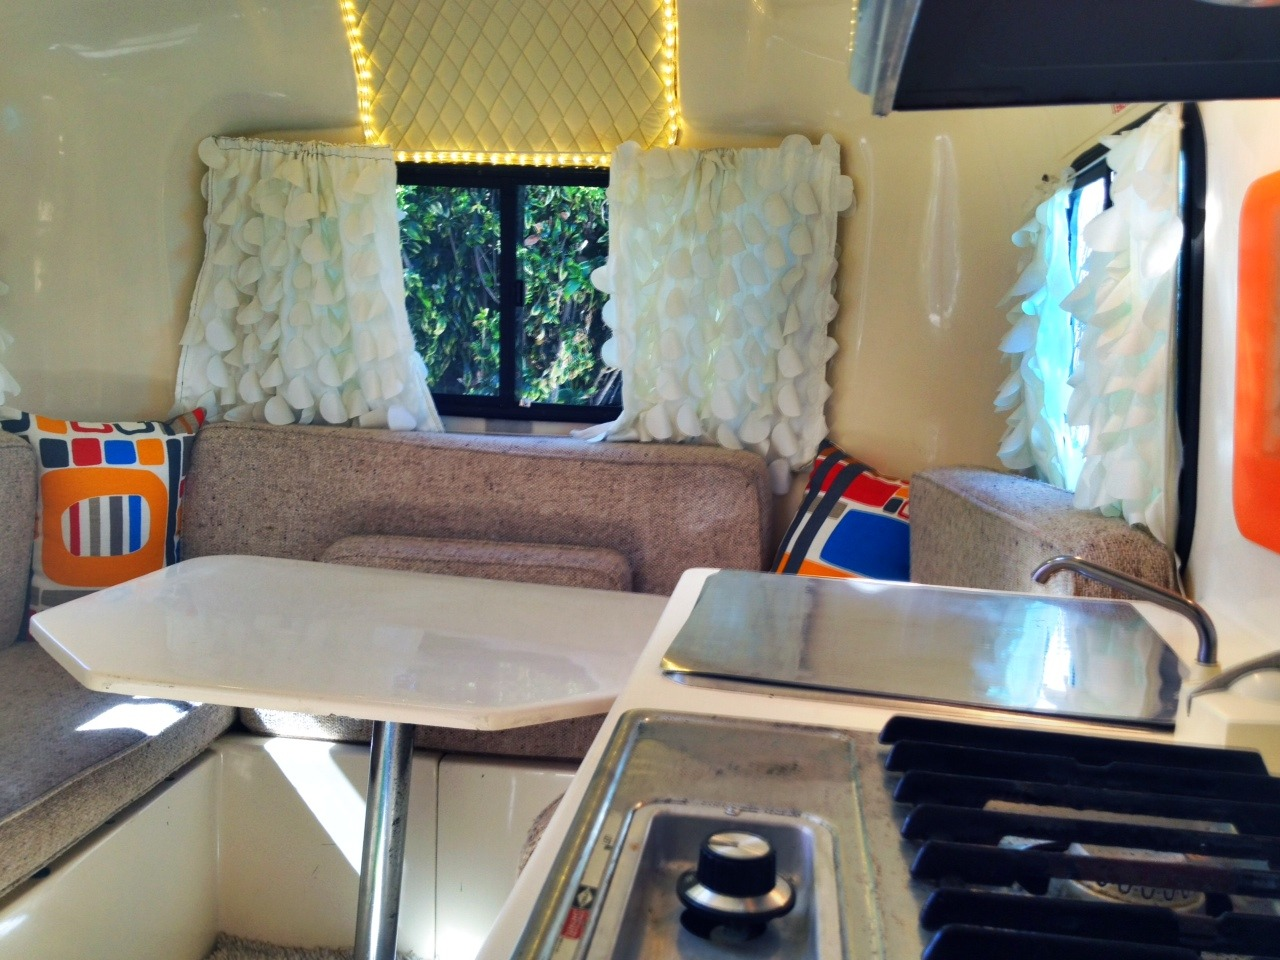 kitchen equipment rental los angeles small outdoor island the happier camper  long awaited interior shots of